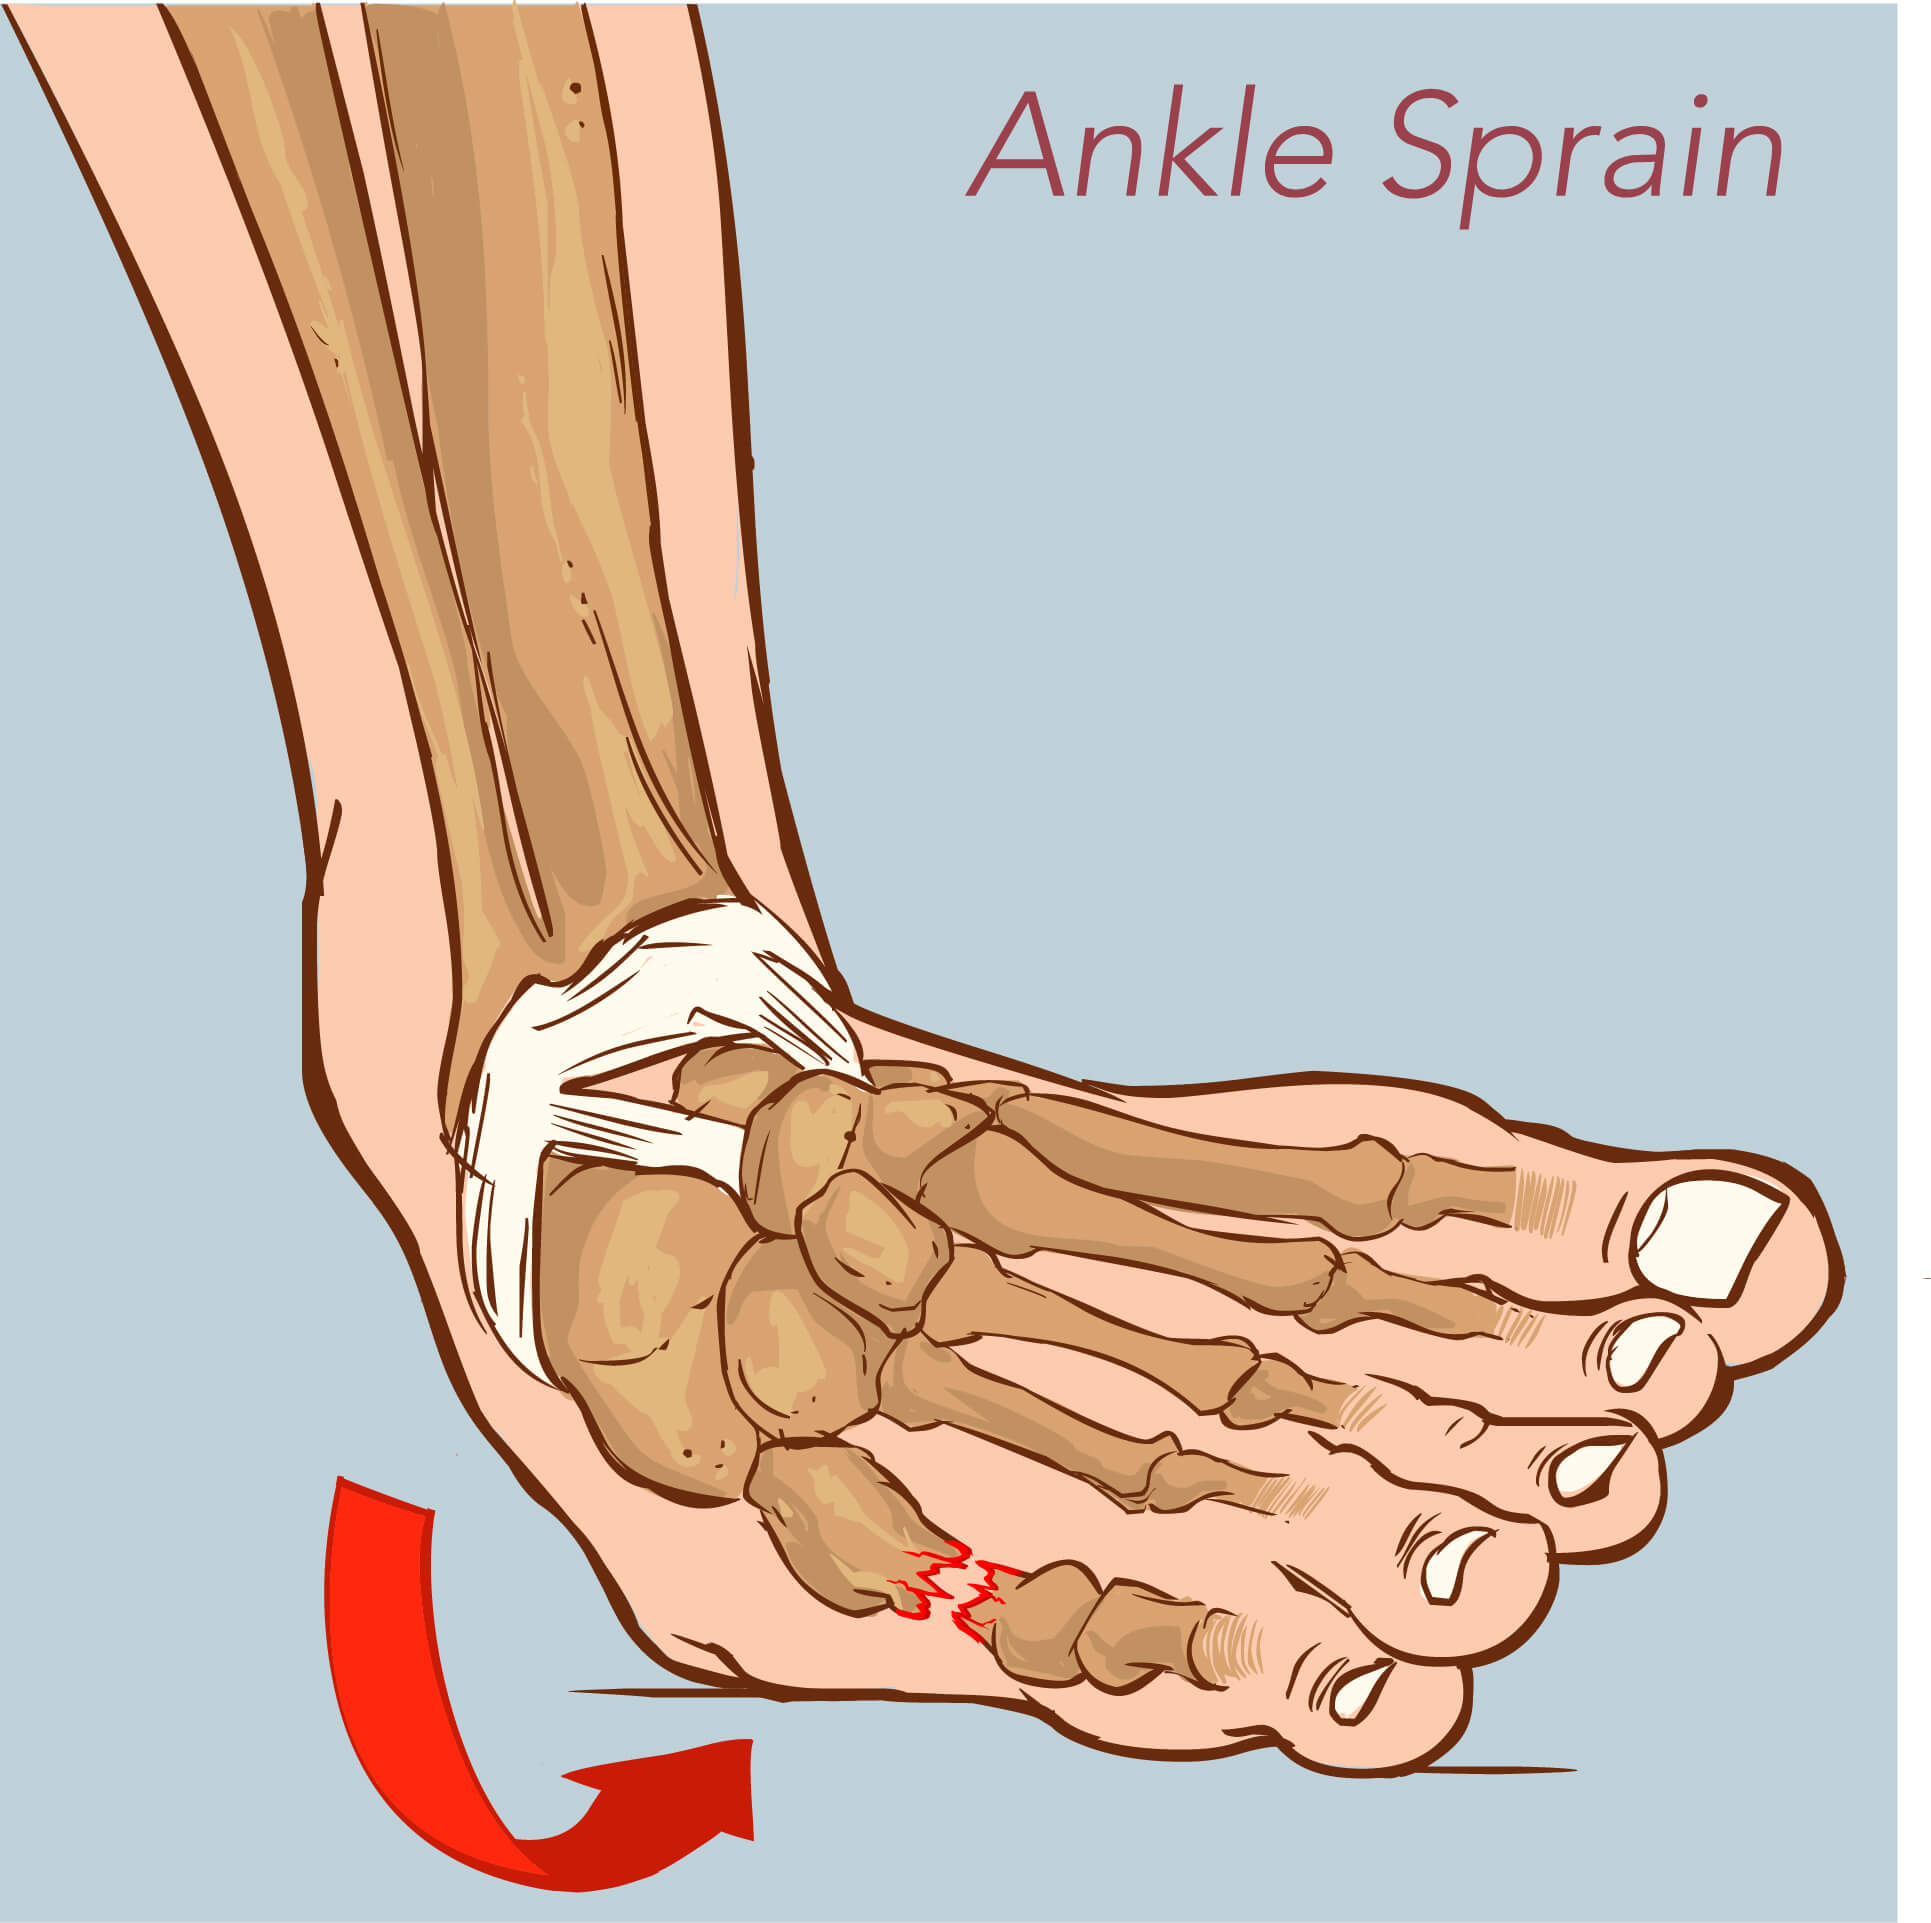 Medical Diagram showing the occurrence of a lateral ankle sprain